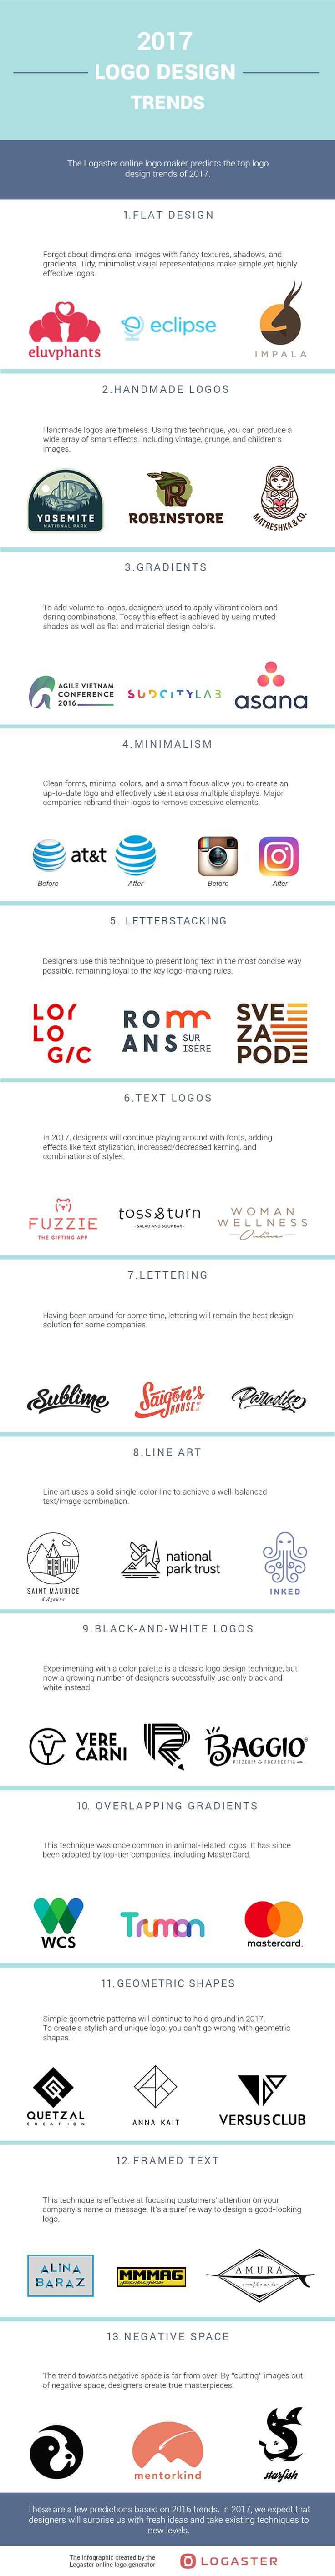 17 best ideas about logo design trends logo design ubersuggest best keyword research online tool click here to use ubersuggest online keyword research tool click here to the ultimate